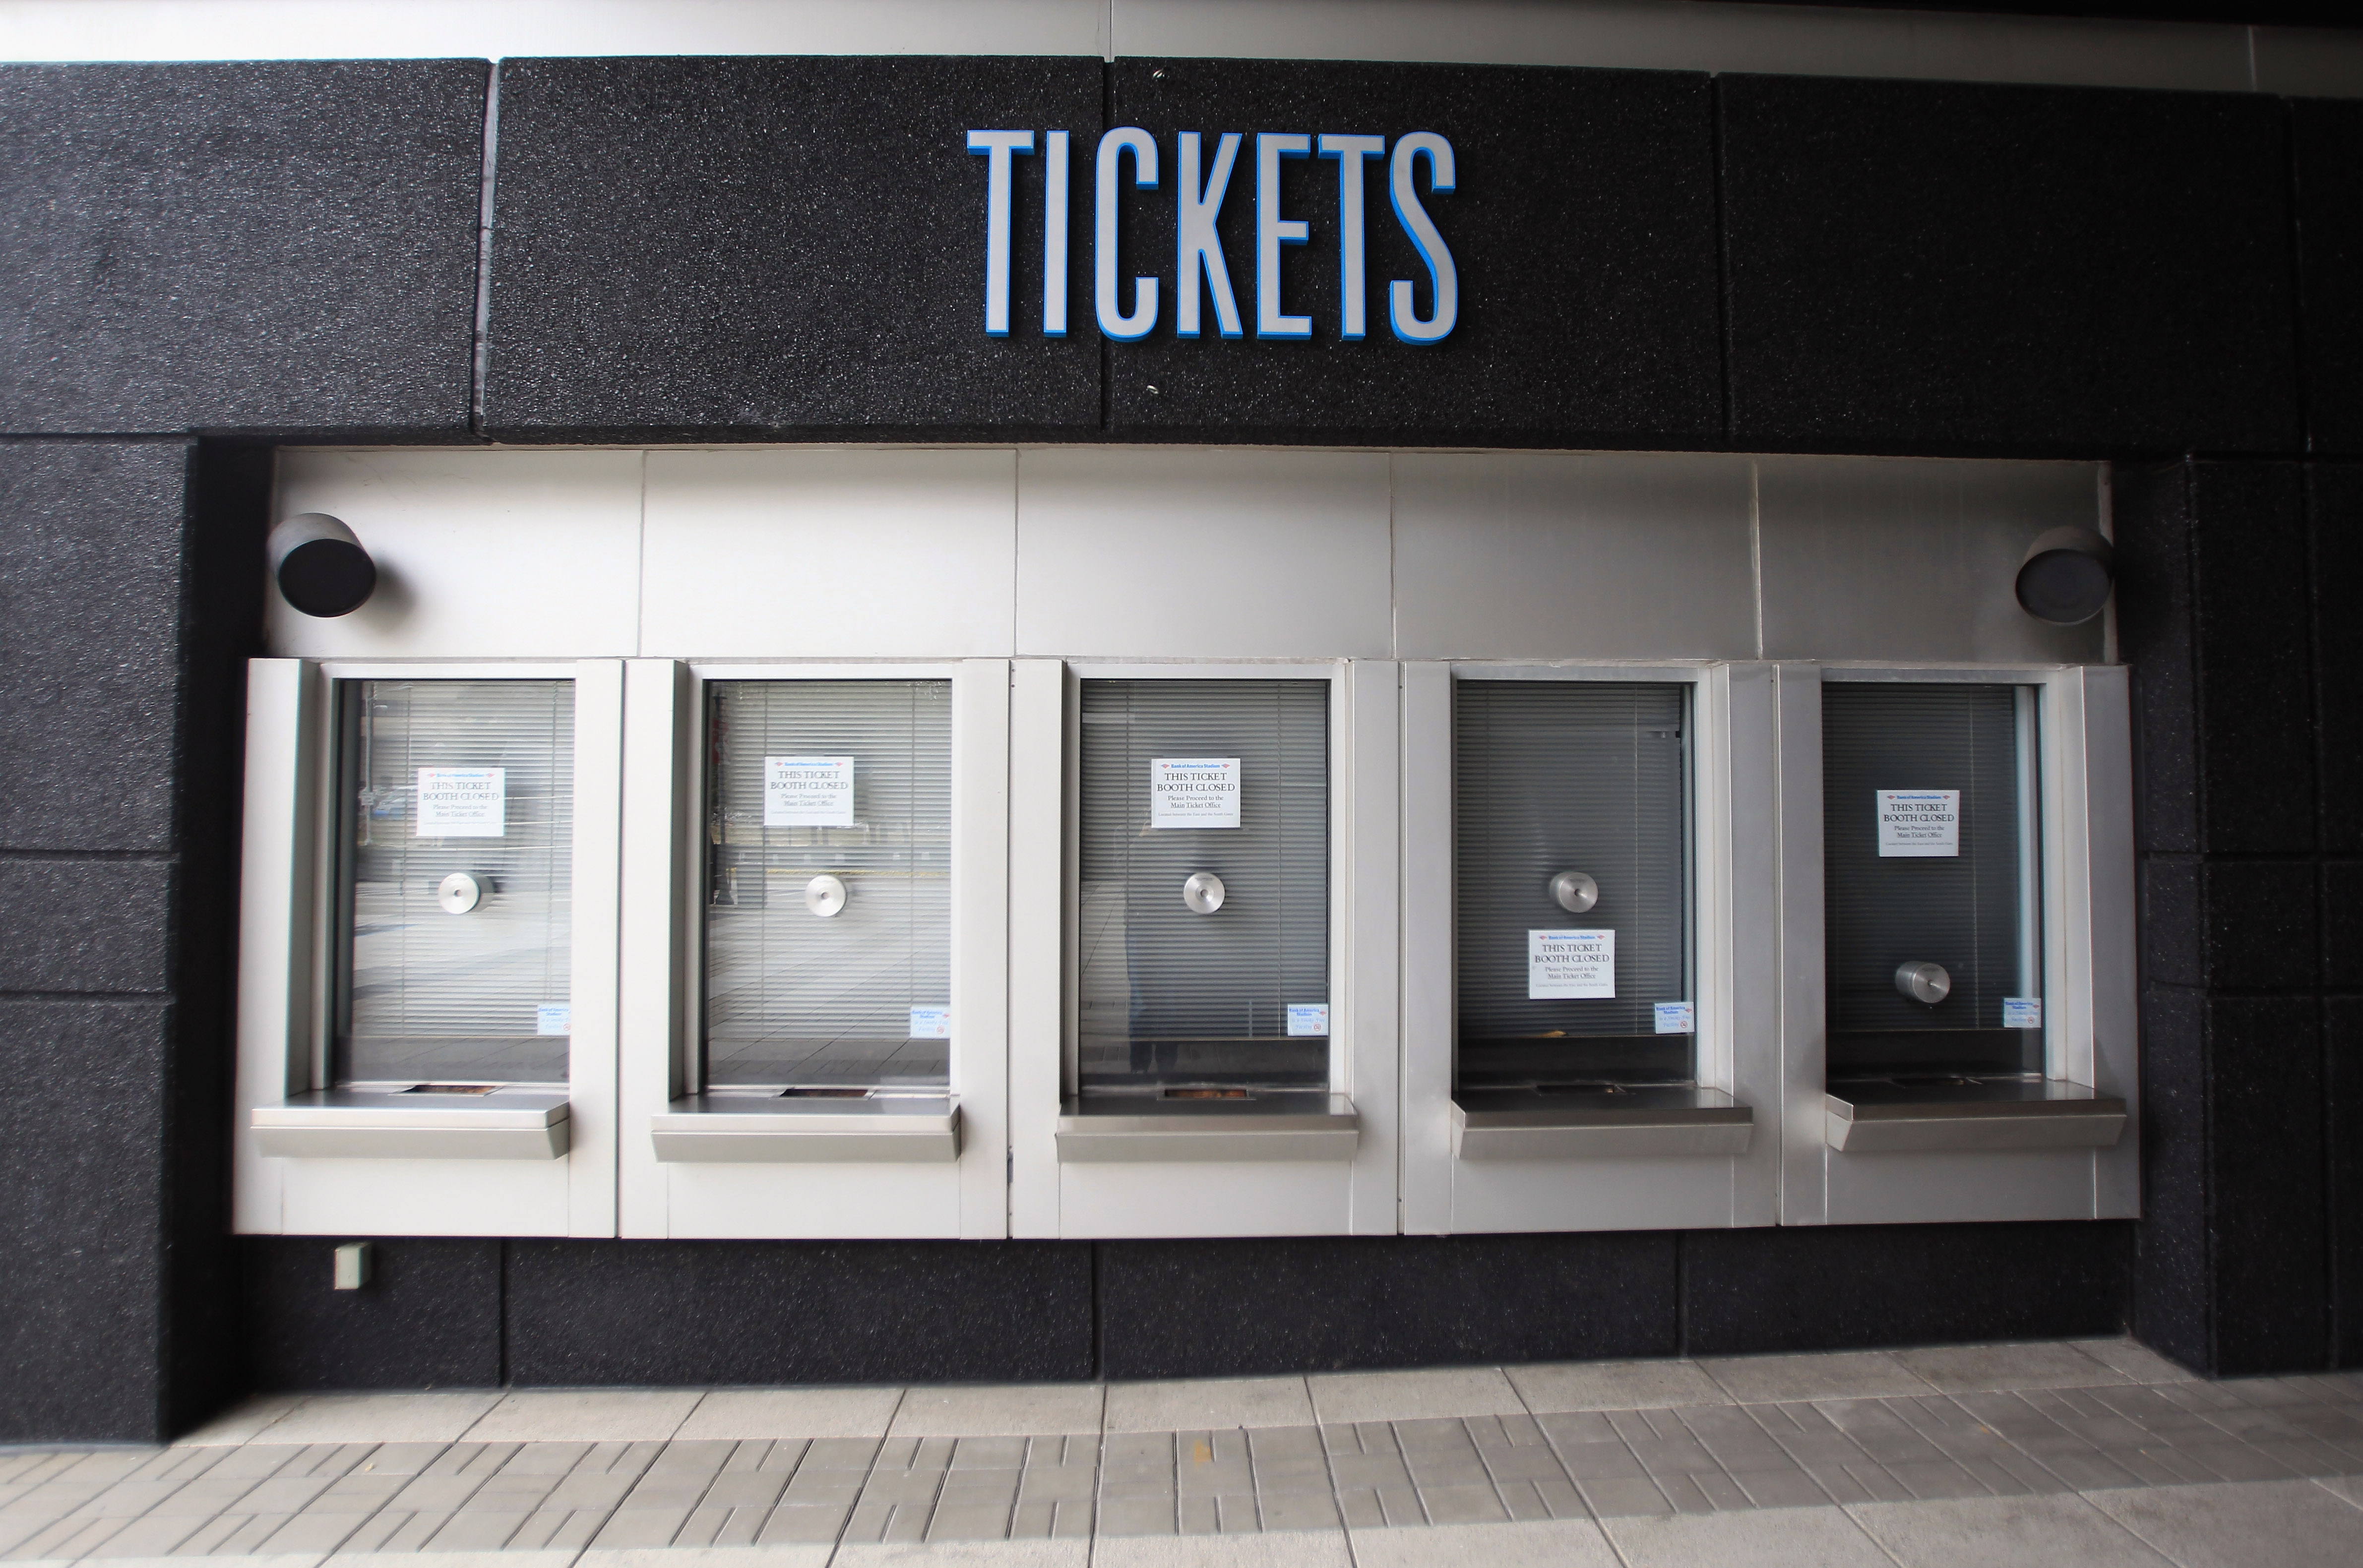 CHARLOTTE, NC - MARCH 04:  A general view of a ticket booth for the Carolina Panthers outside Bank of America Stadium as the NFL lockout looms on March 4, 2011 in Charlotte, North Carolina.  (Photo by Streeter Lecka/Getty Images)